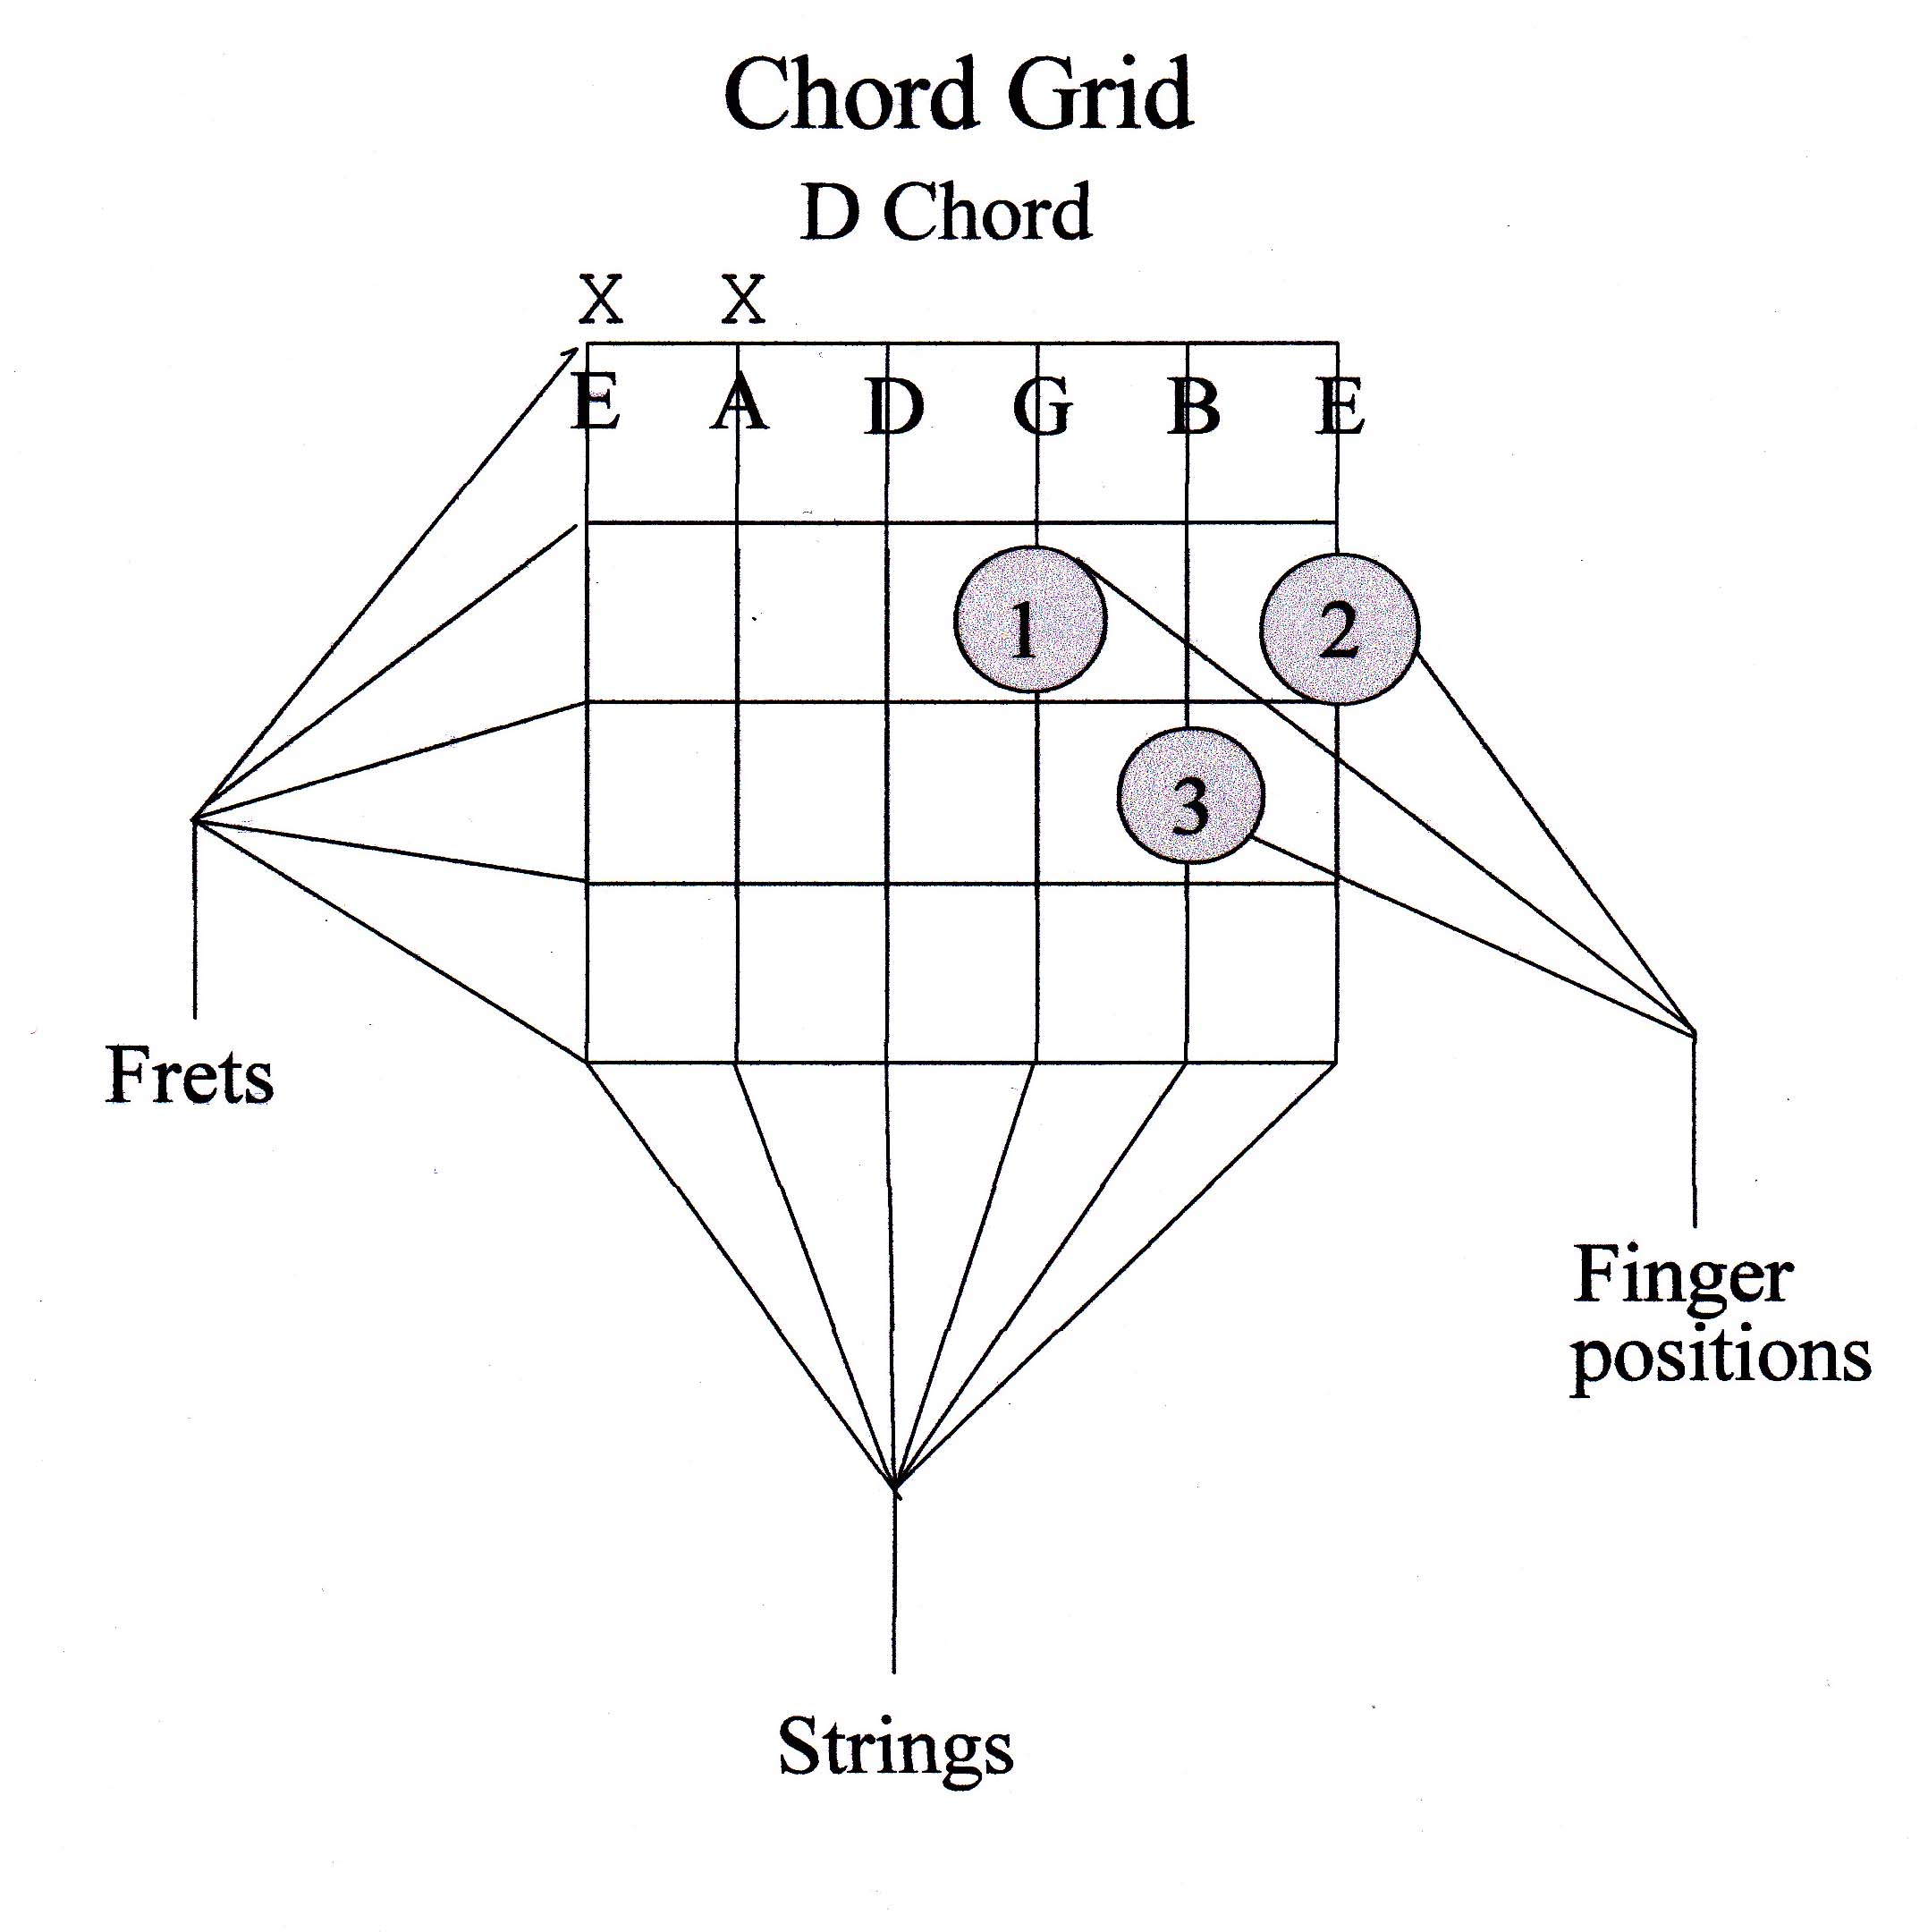 Guitar chord guide beginner marcus curtis music lets begin by learning how to read a chord grid see the example above the vertical lines represent the strings of the guitar hexwebz Gallery